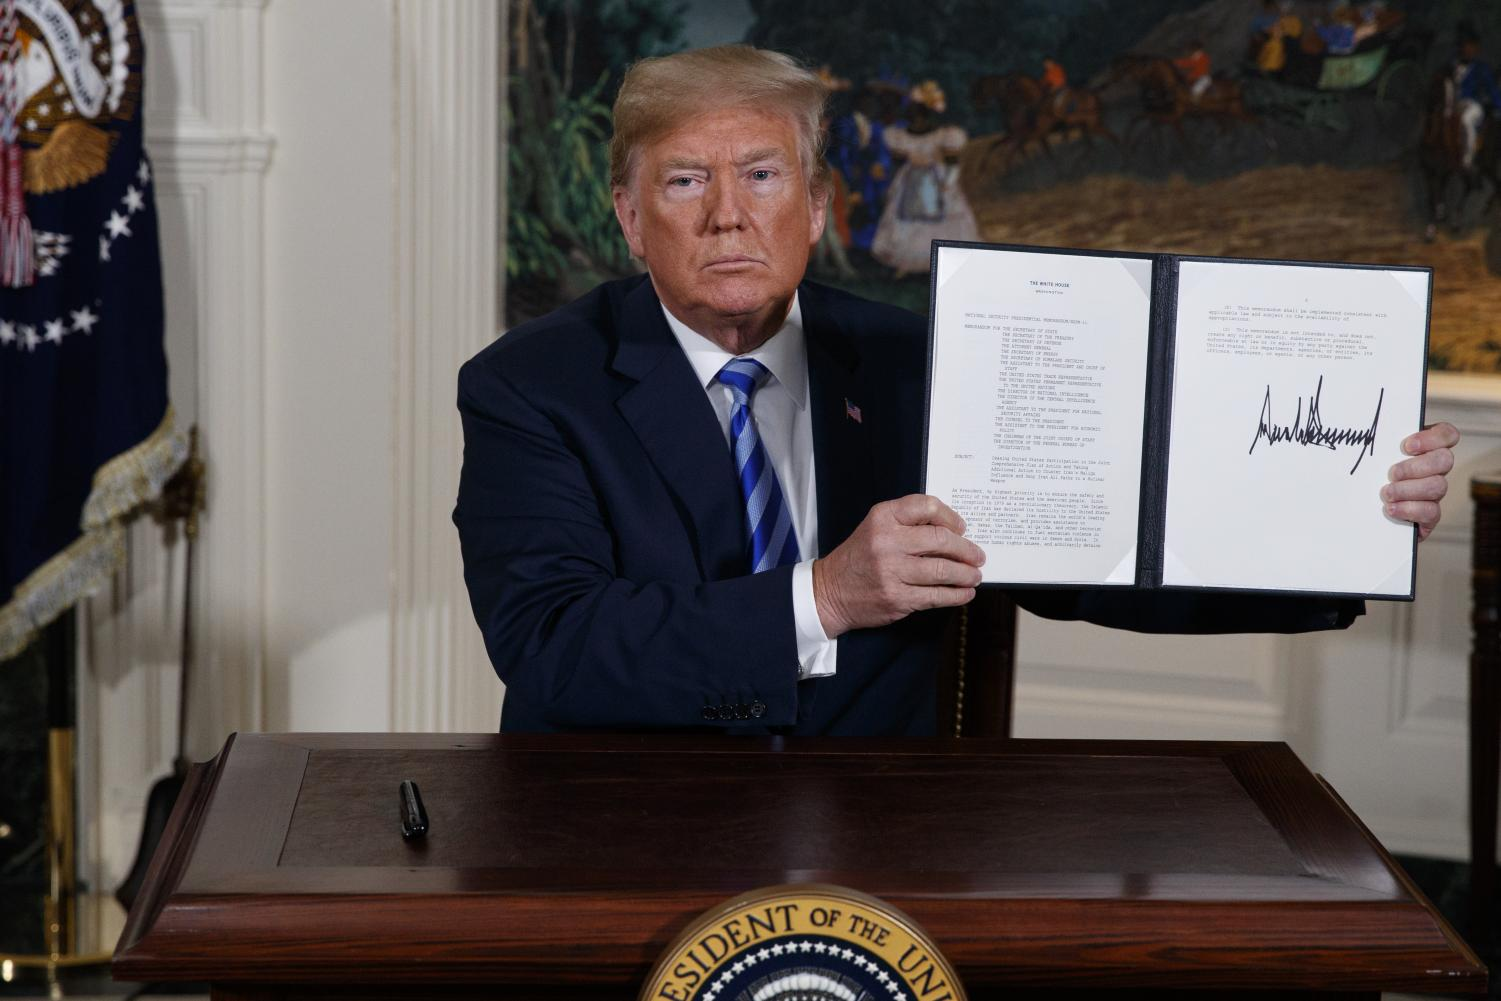 In this May 8, 2018 file photo President Donald Trump shows a signed Presidential Memorandum after delivering a statement on the Iran nuclear deal from the Diplomatic Reception Room of the White House. Iranian President Hassan Rouhani is reportedly set to announce Wednesday, May 8, 2019, ways the Islamic Republic will react to continued U.S. pressure after President Donald Trump pulled America from Tehran's nuclear deal with world powers.